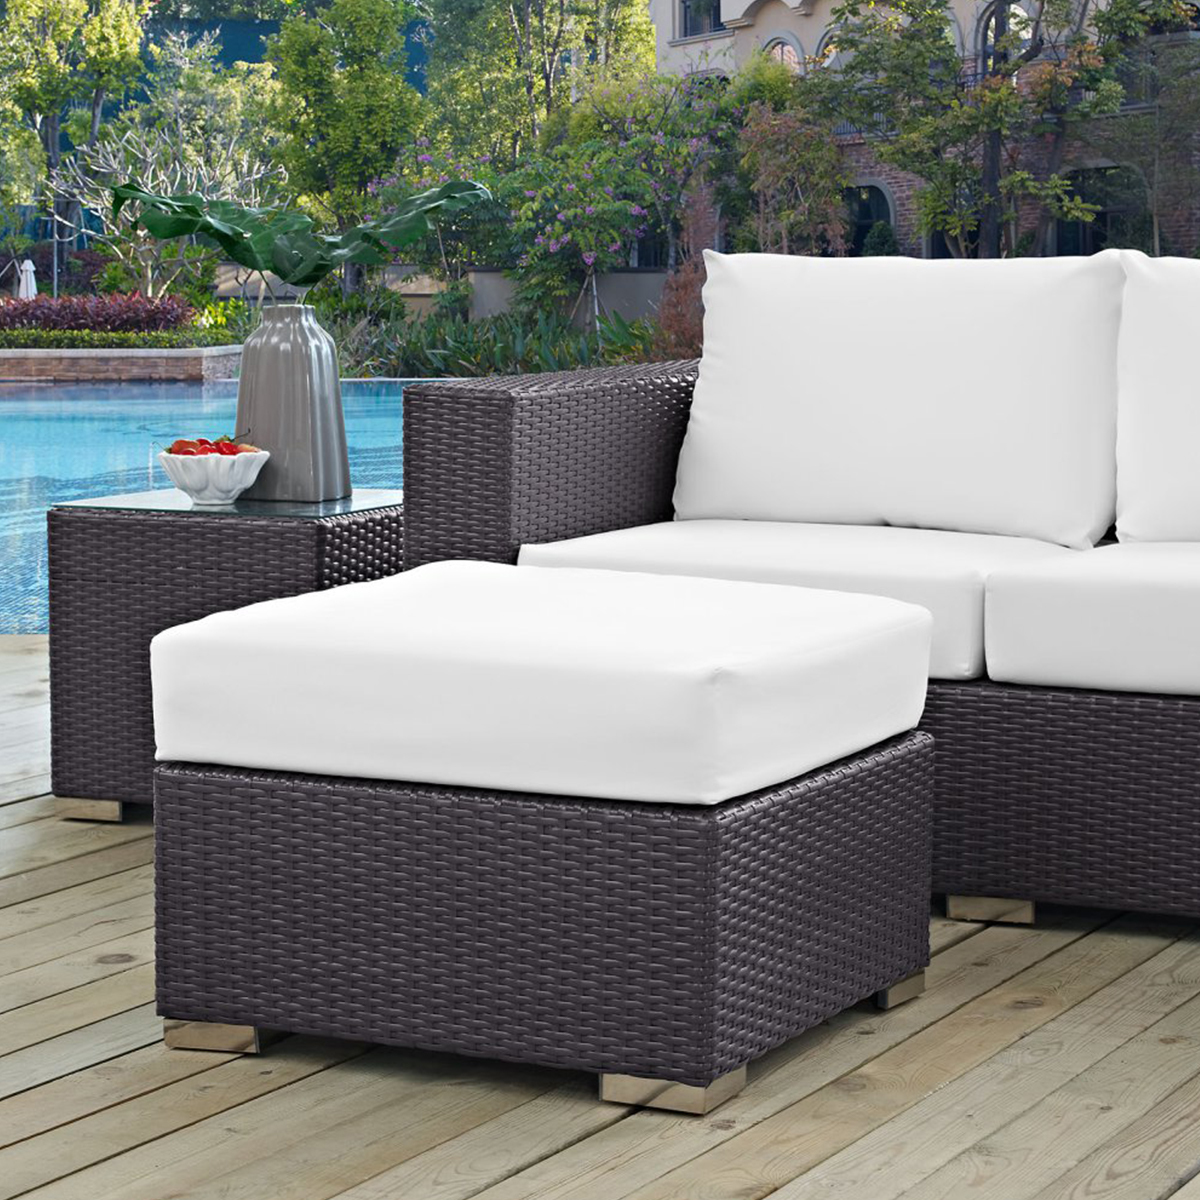 Forever Patio Catalina Sofa with Cushions NC4573S-EX recommendations